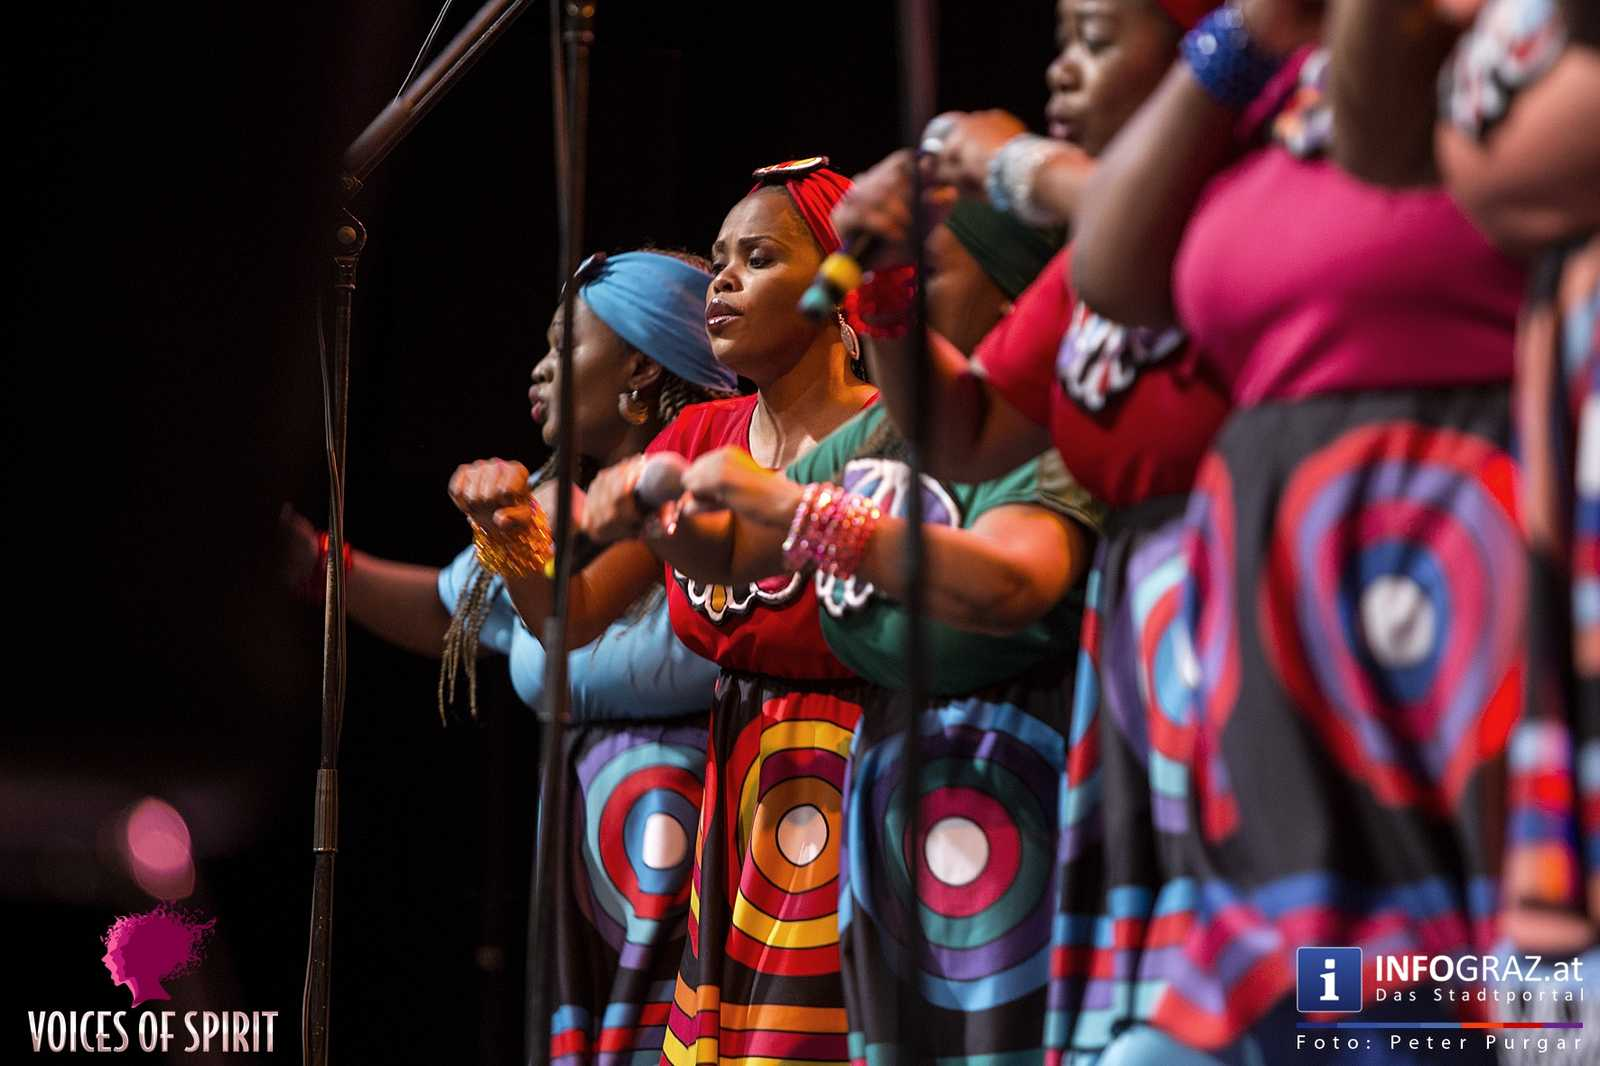 soweto gospel choir internationales chorfestival statdthalle graz voices of spirit eroeffnung festivals 2016 016